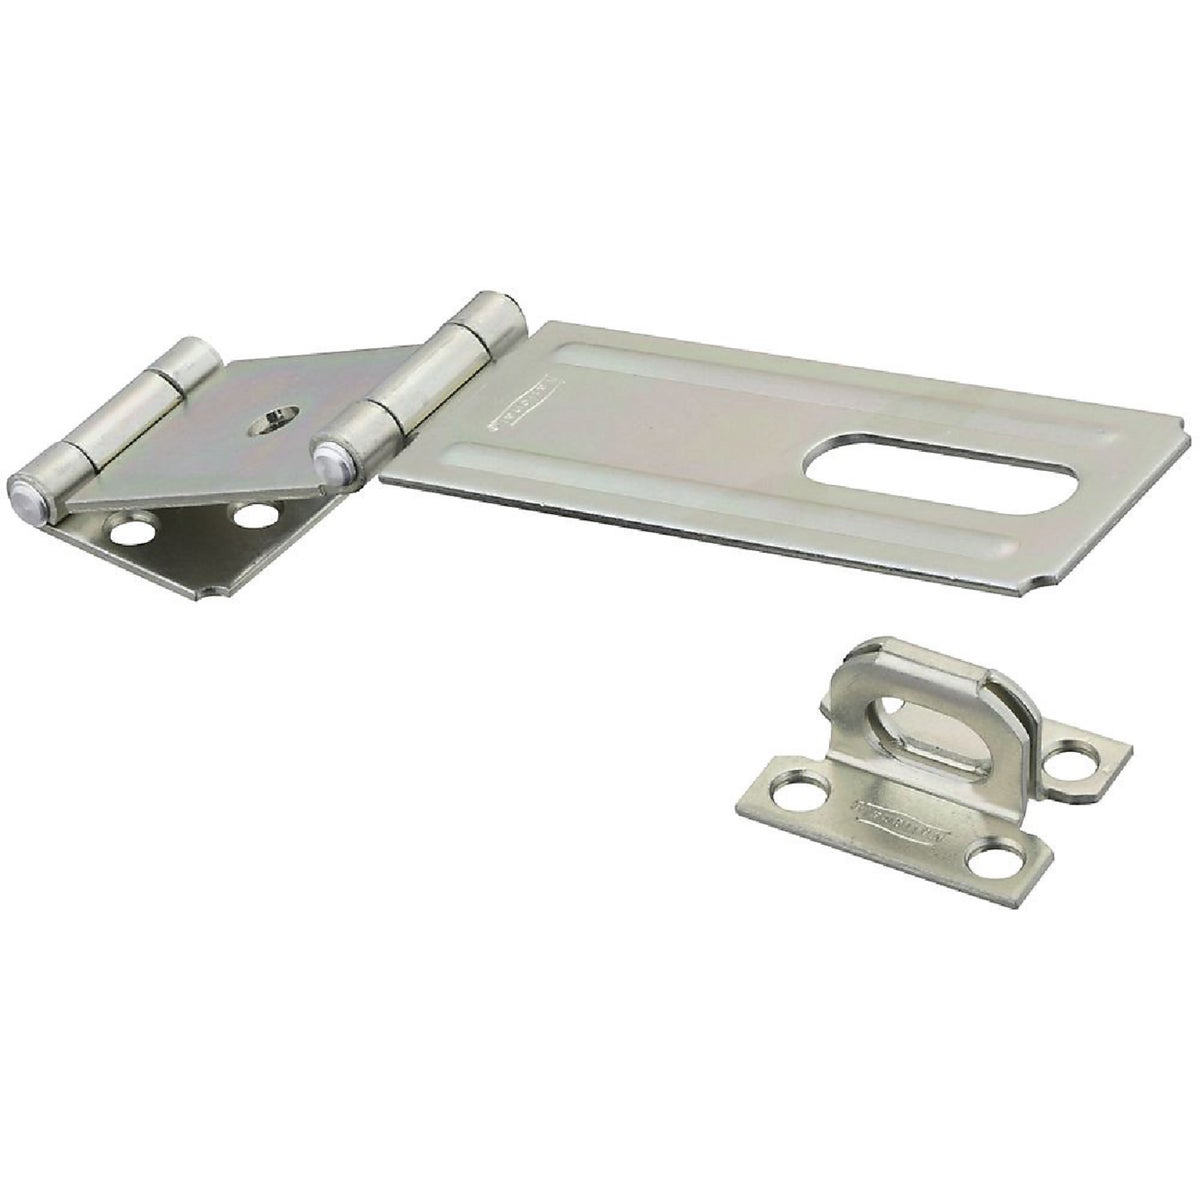 """4-1/2"""" DOUBLE HINGE HASP - N103291 by National Mfg Co"""